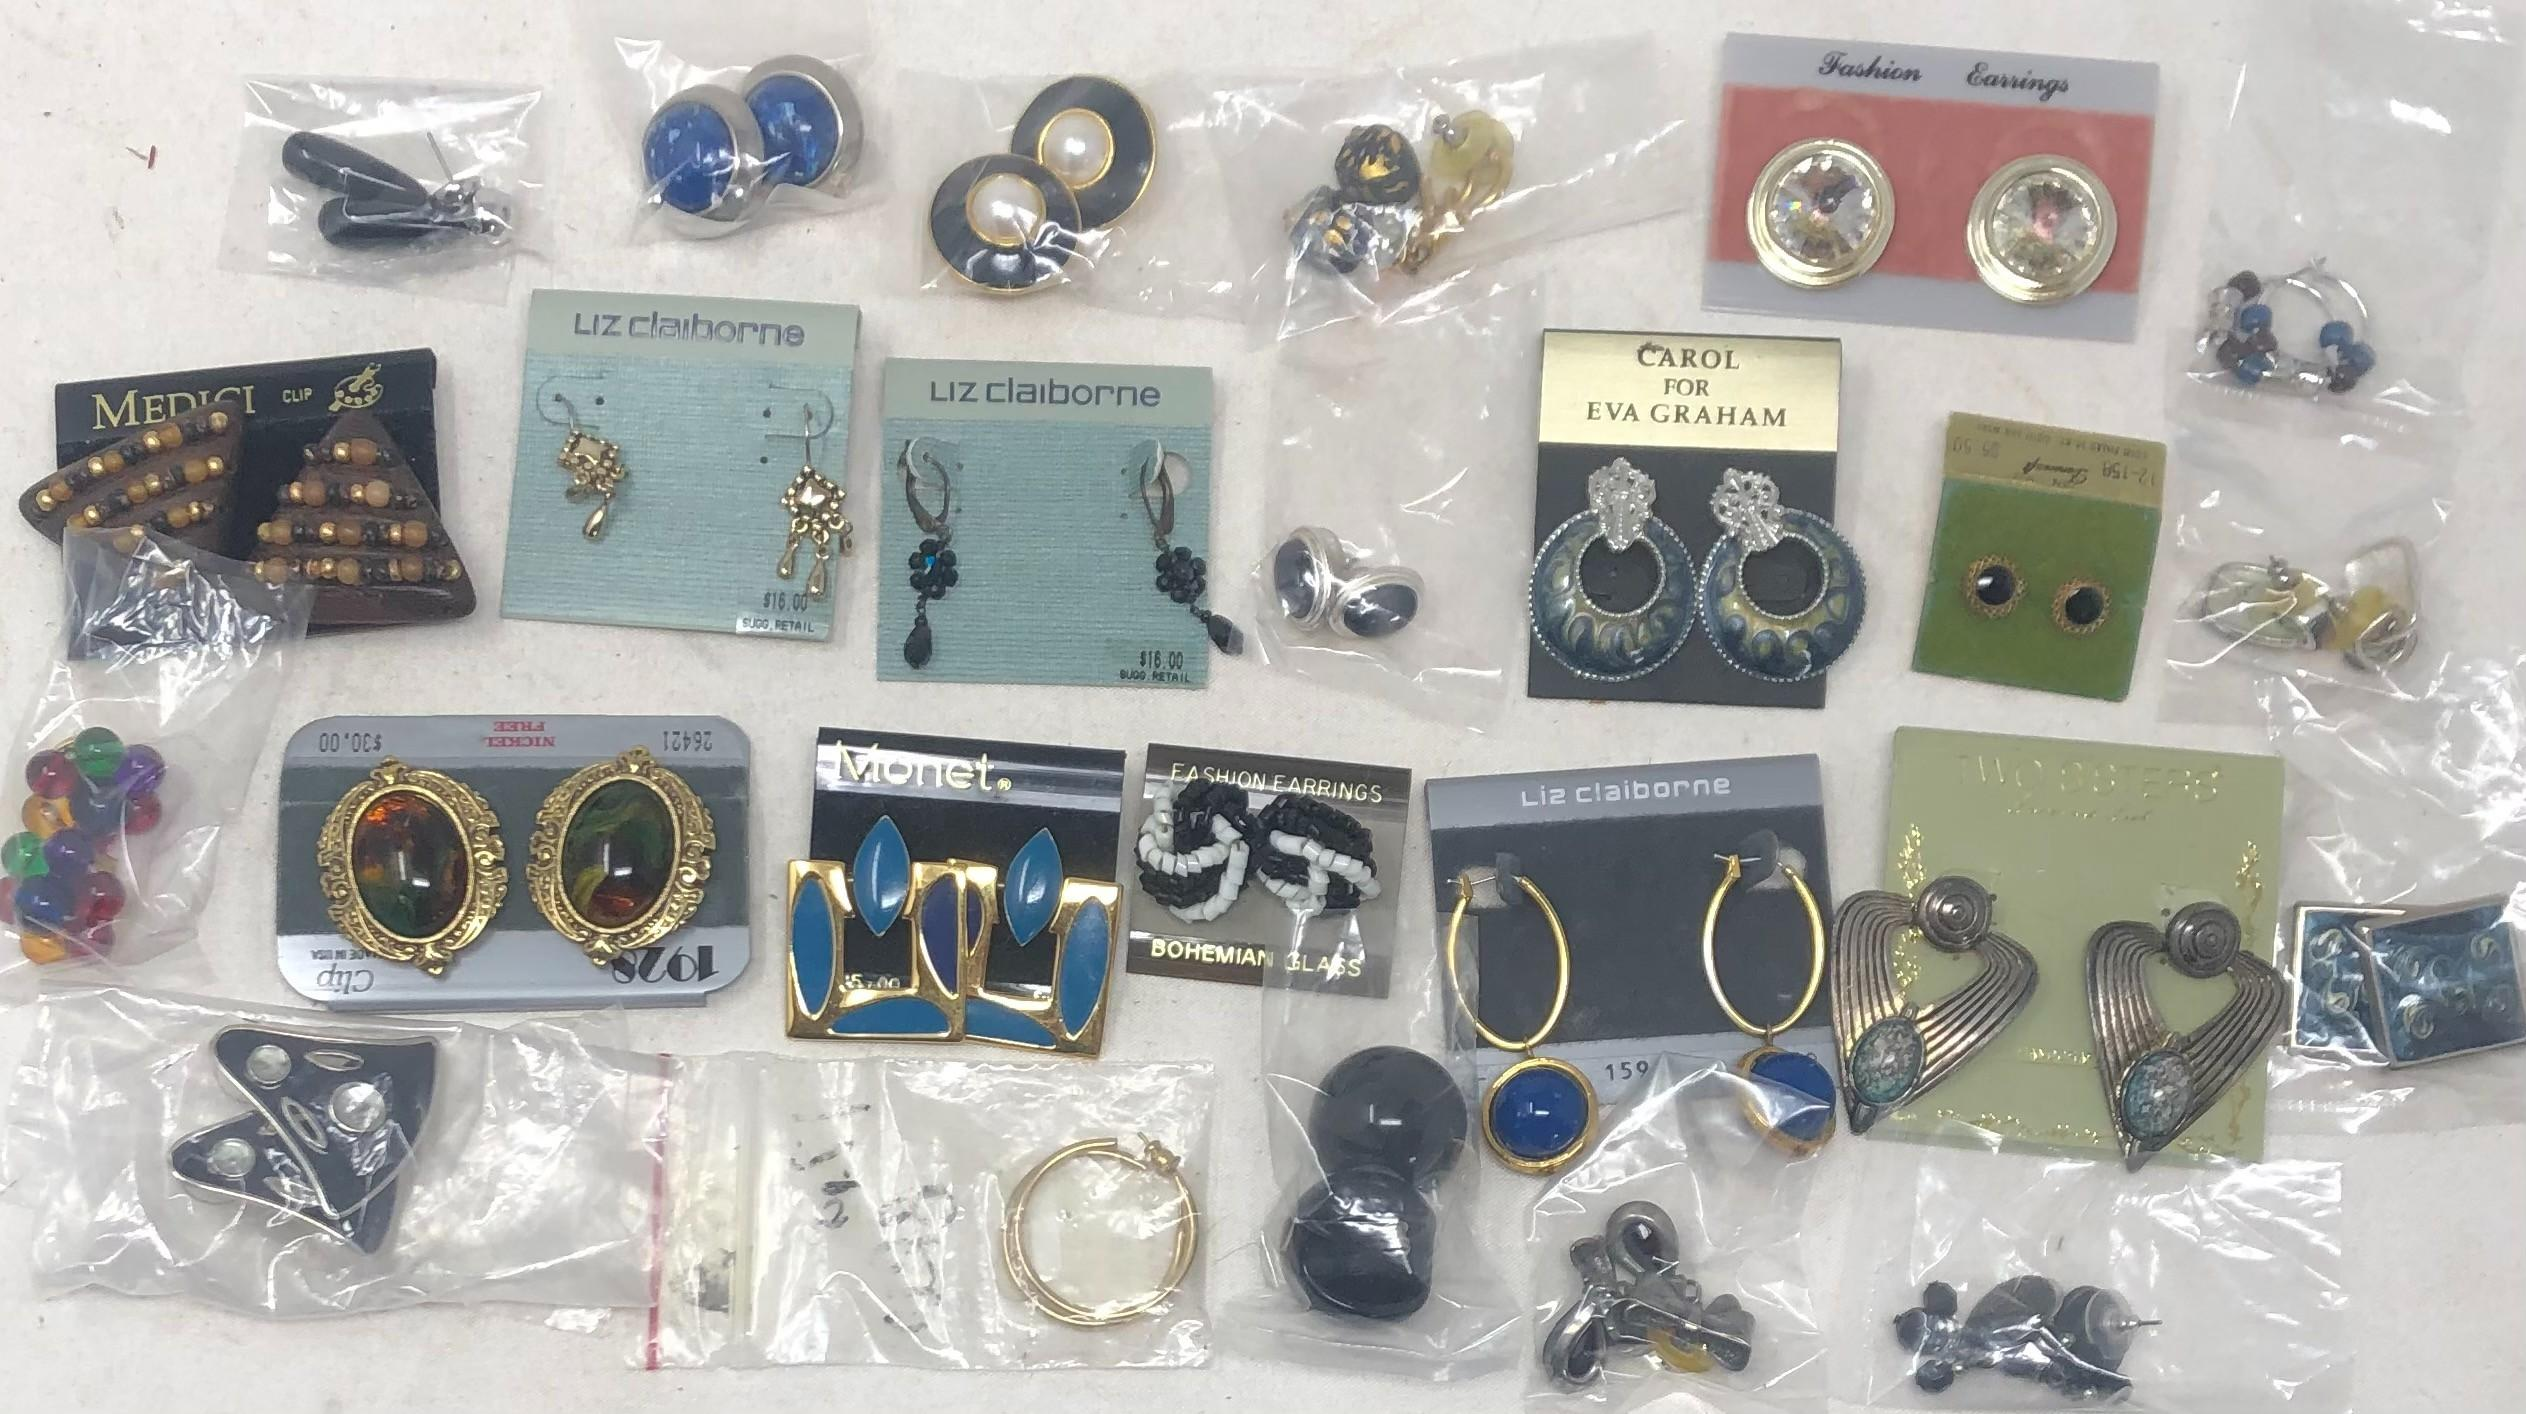 Twenty-five pairs of costume earrings includes Monet, Liz Claiborne, Two Sisters, Medici and 1928 in various styles.